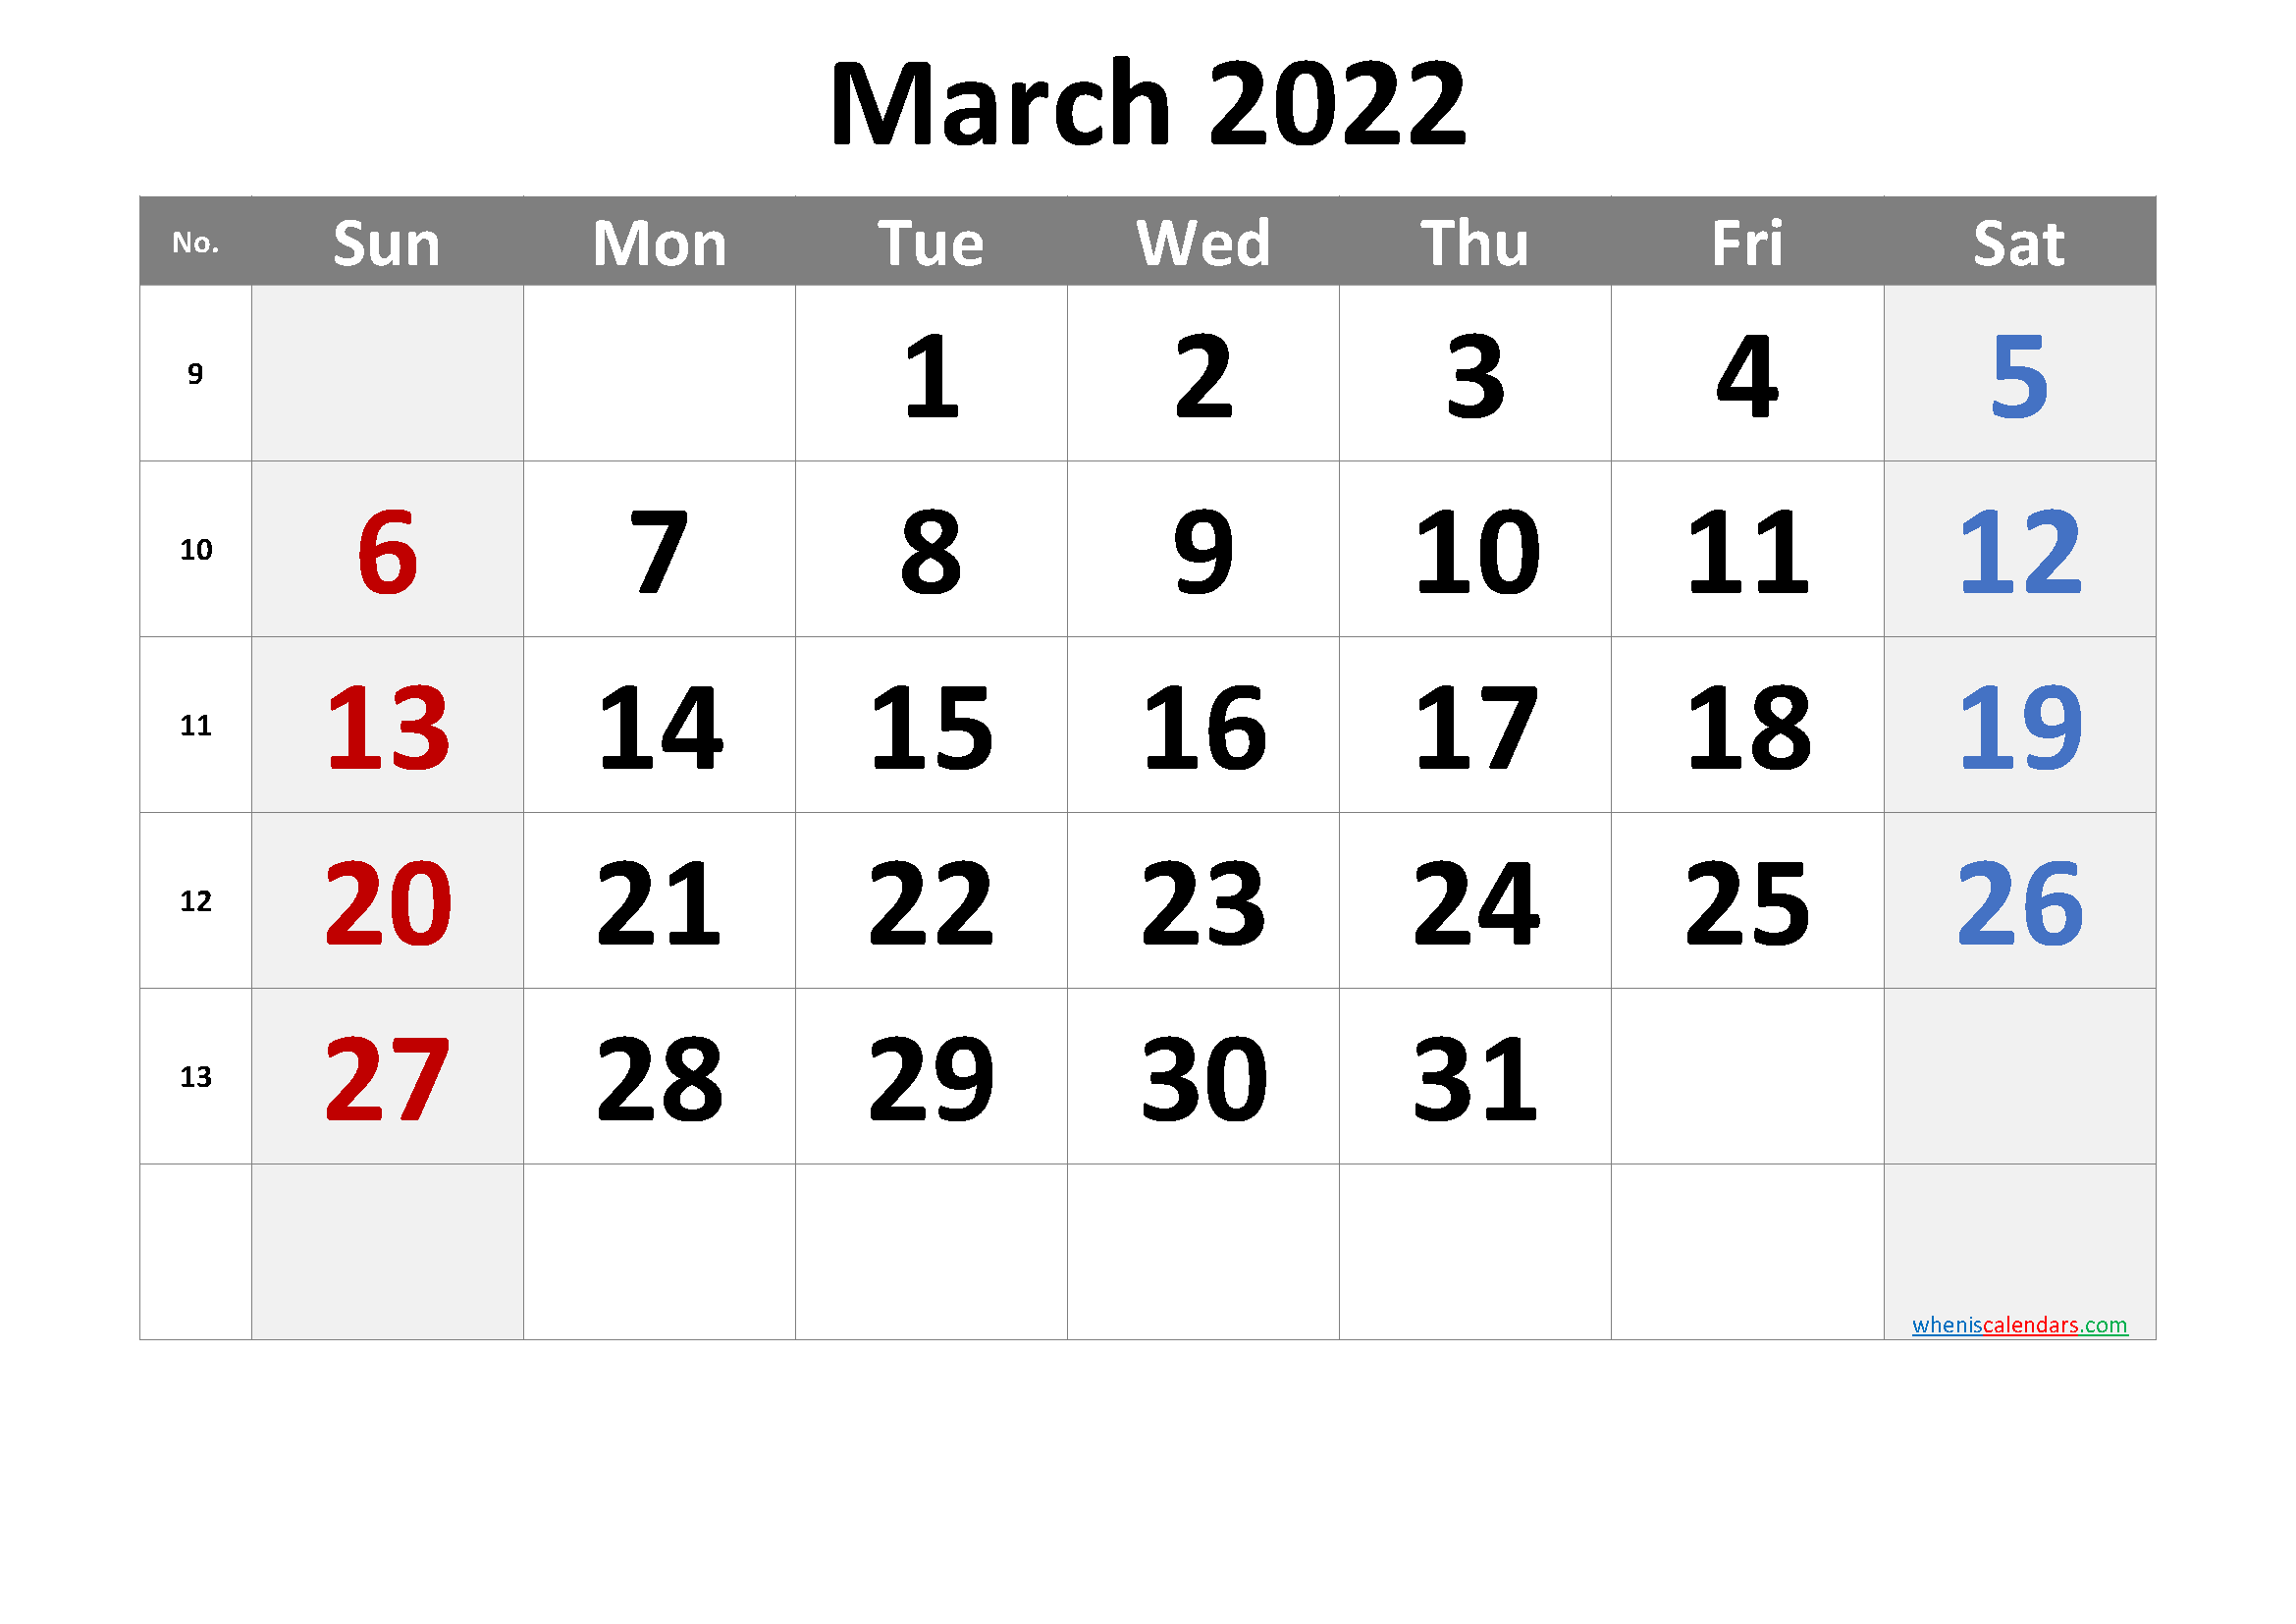 March 2022 Printable Calendar with Week Numbers